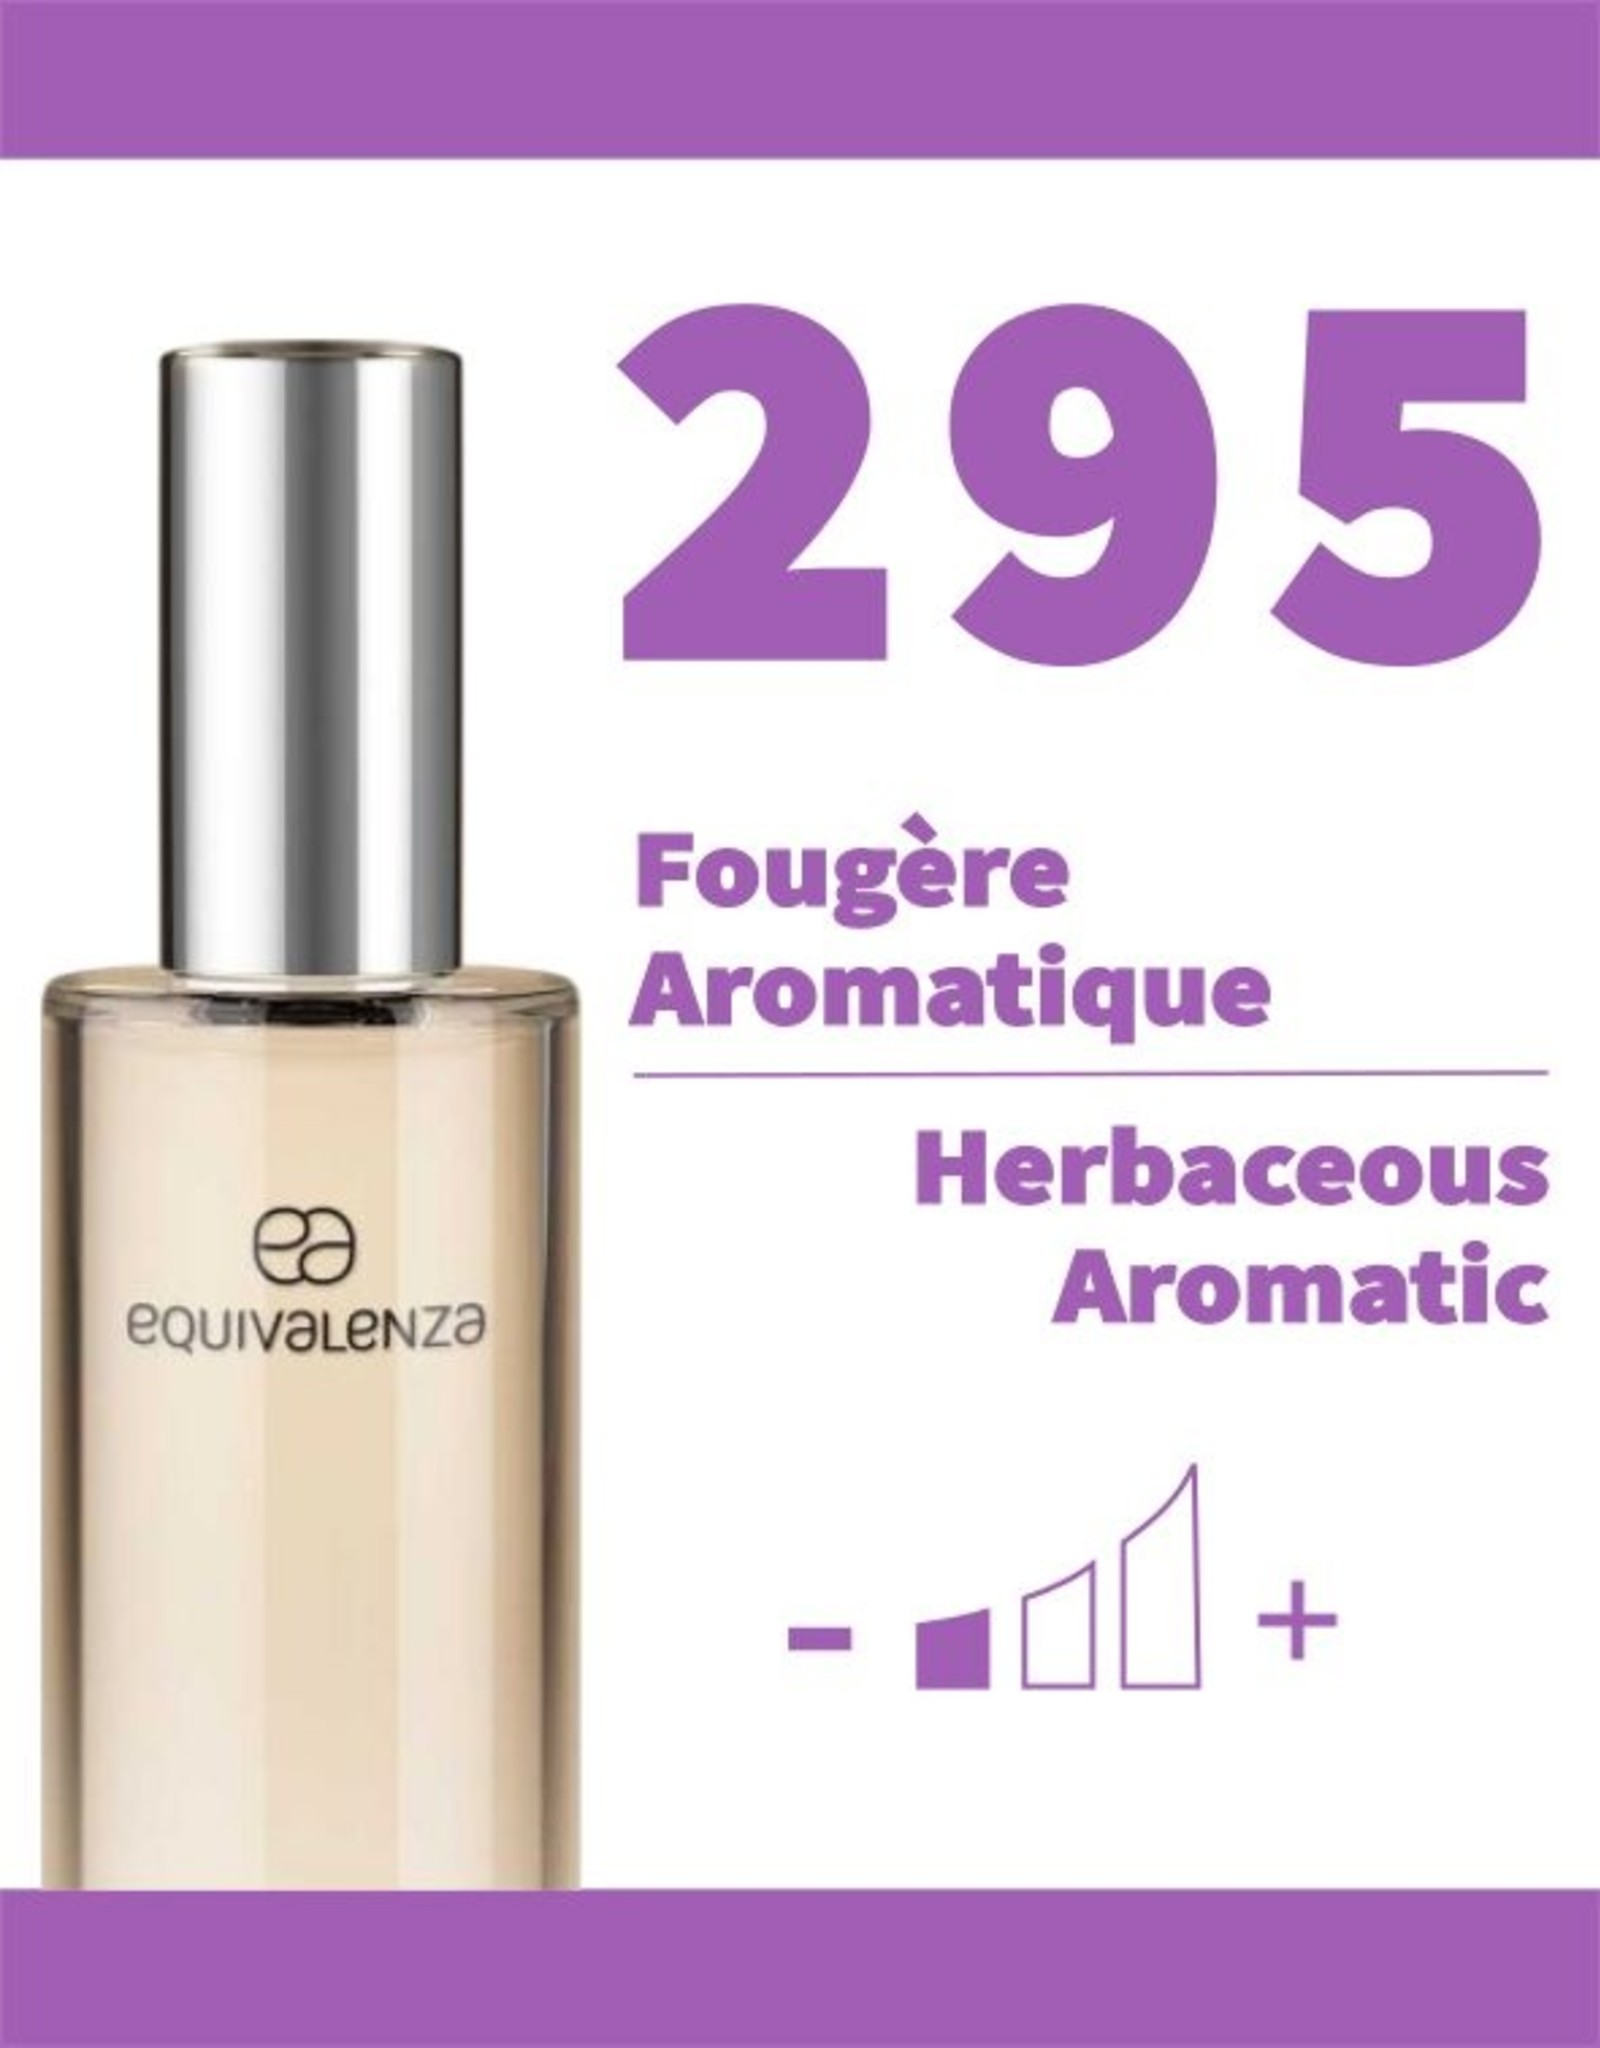 Equivalenza Herbaceous Aromatic 295